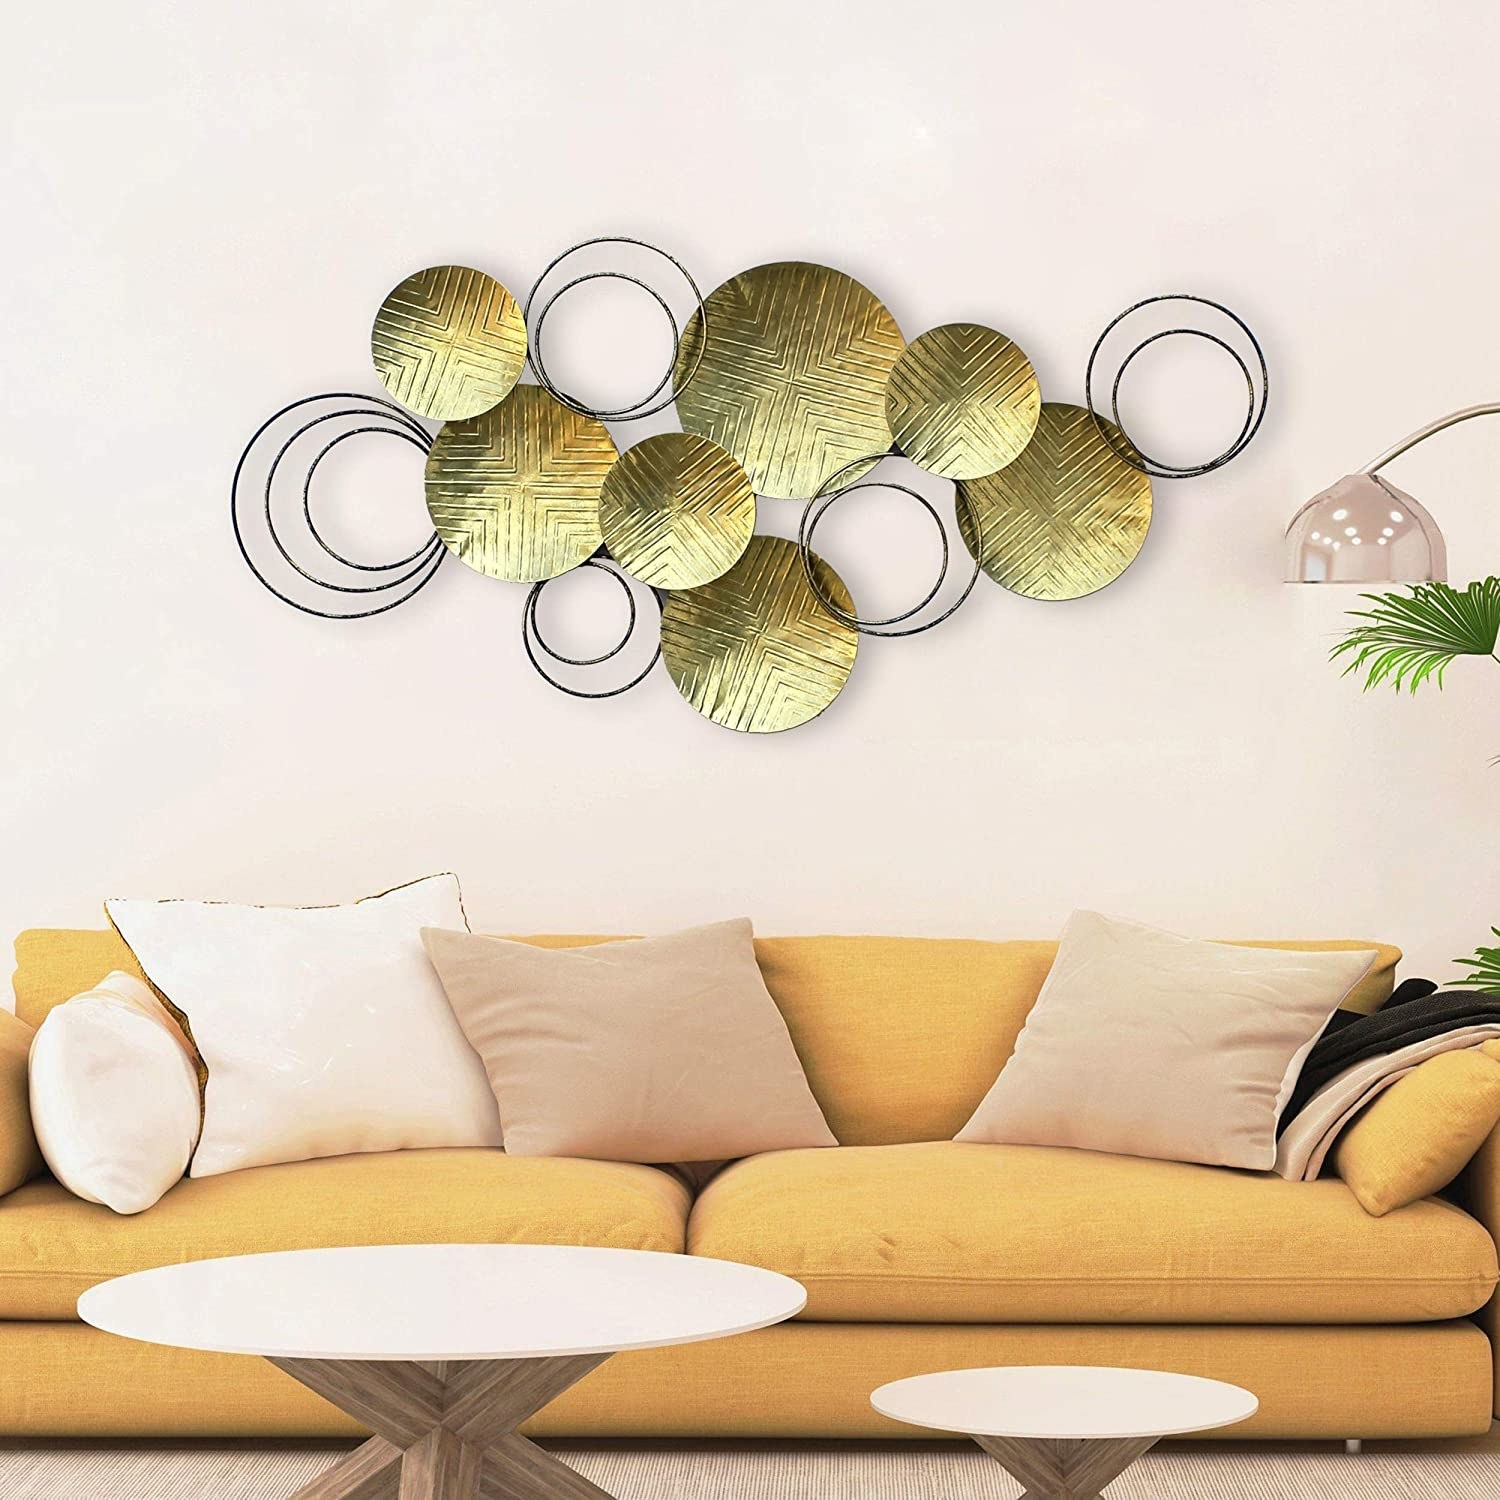 A metal wall art with several round gold metal plates and black wire circles clustered together